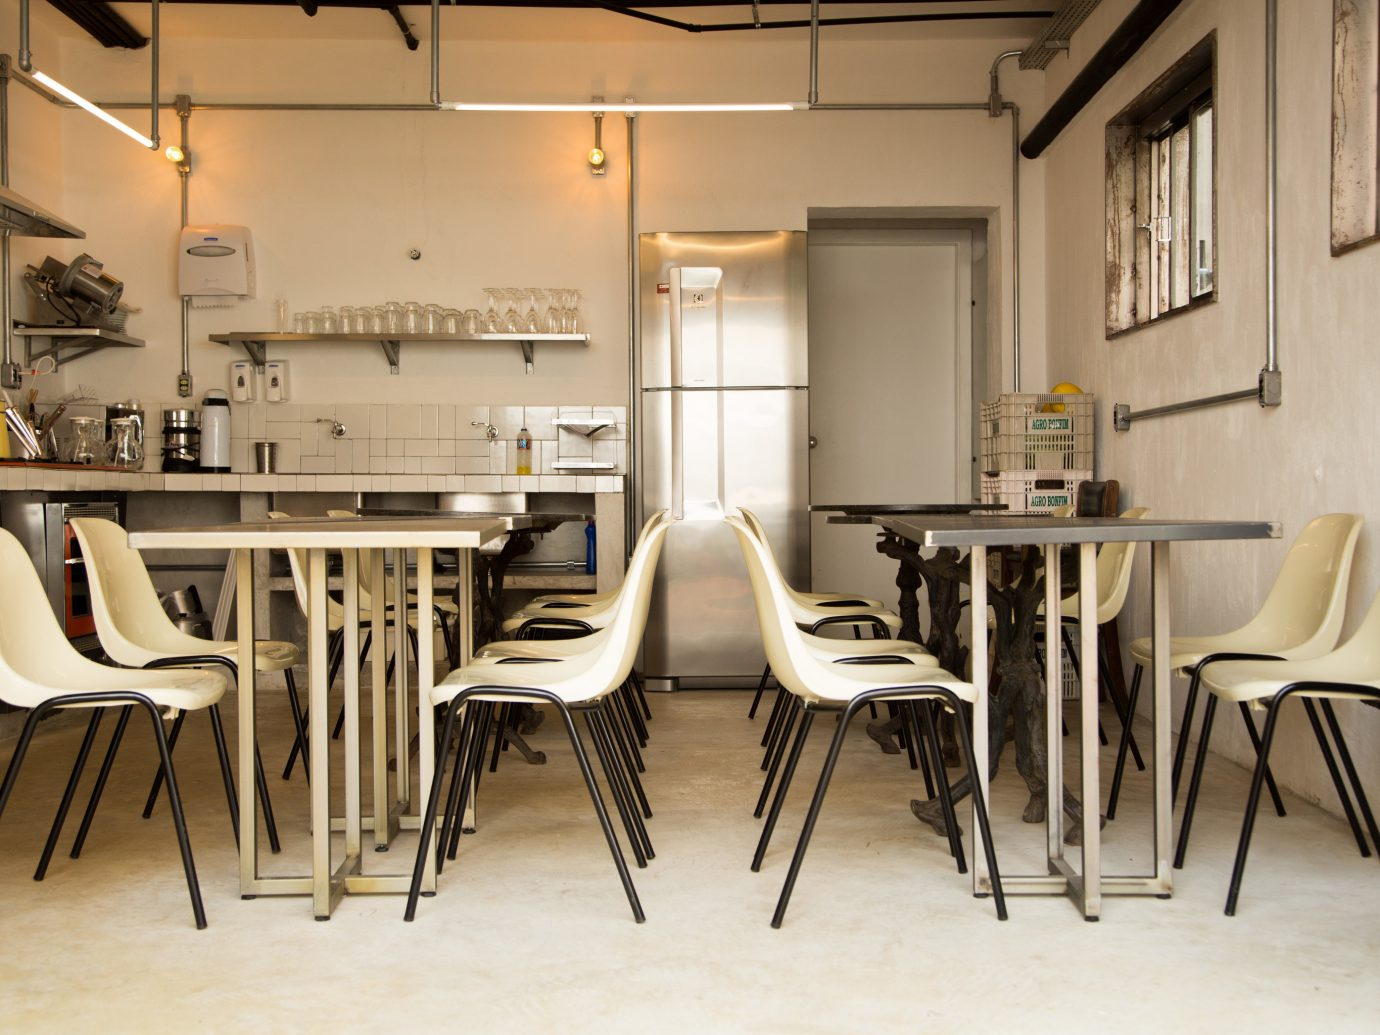 Hotels floor indoor chair furniture Kitchen table interior design dining room product design flooring dining table